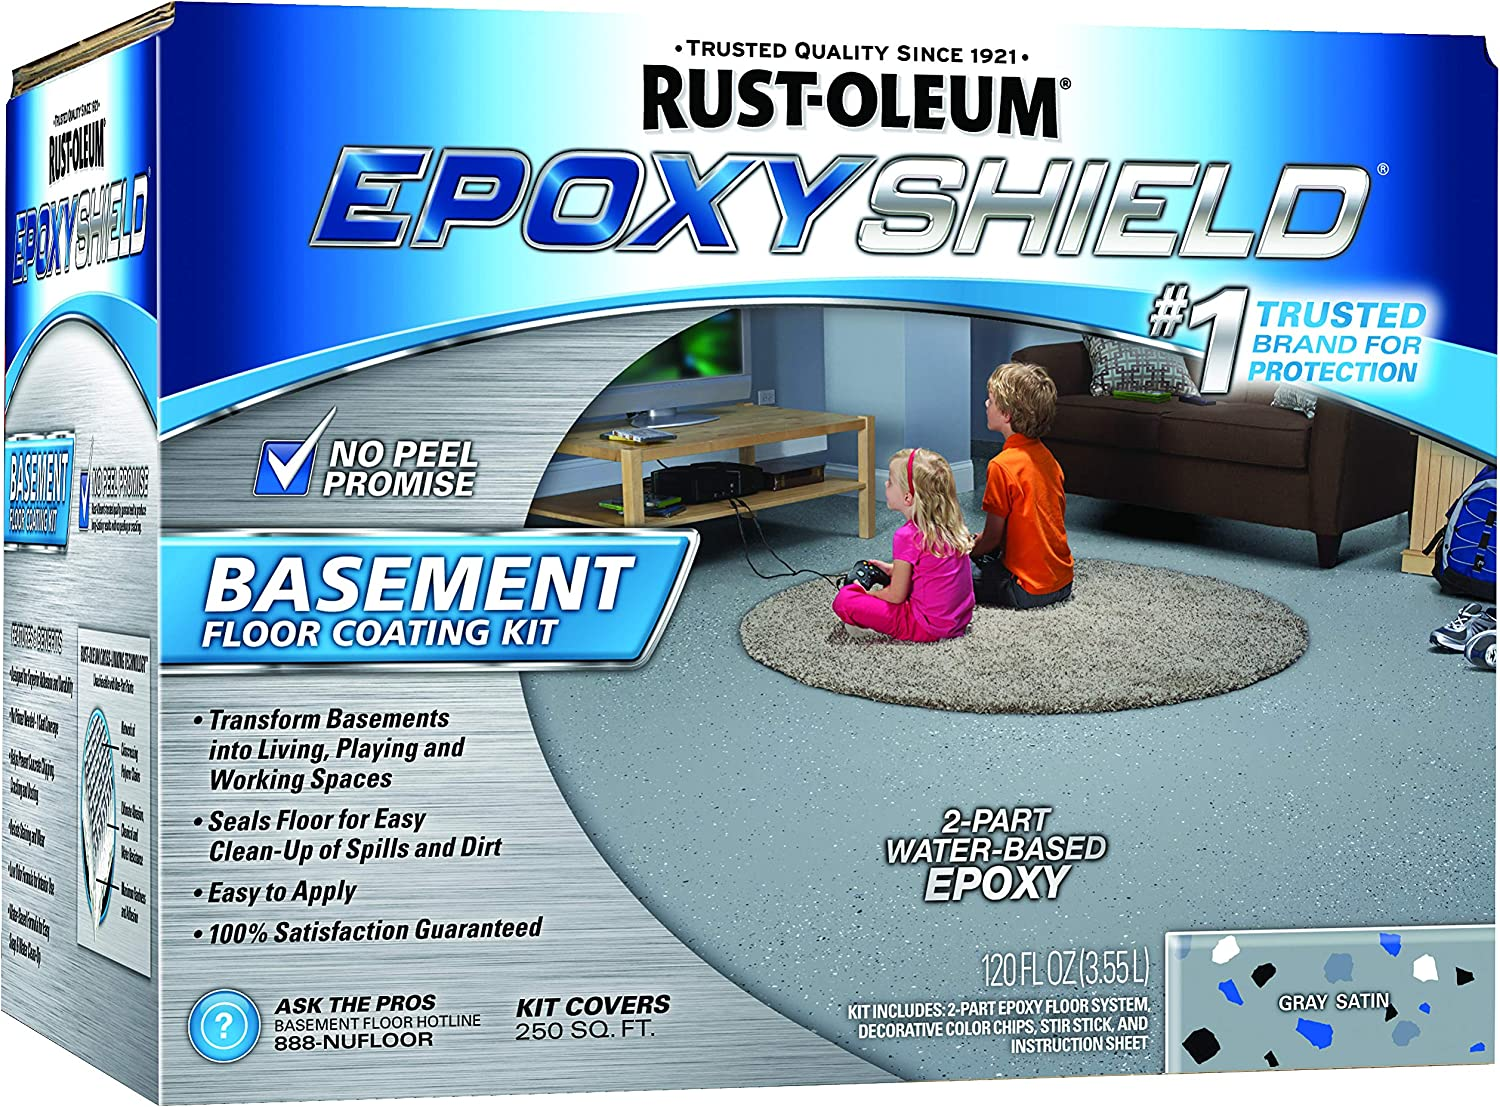 Rust-Oleum Epoxy Basement Floor Kit